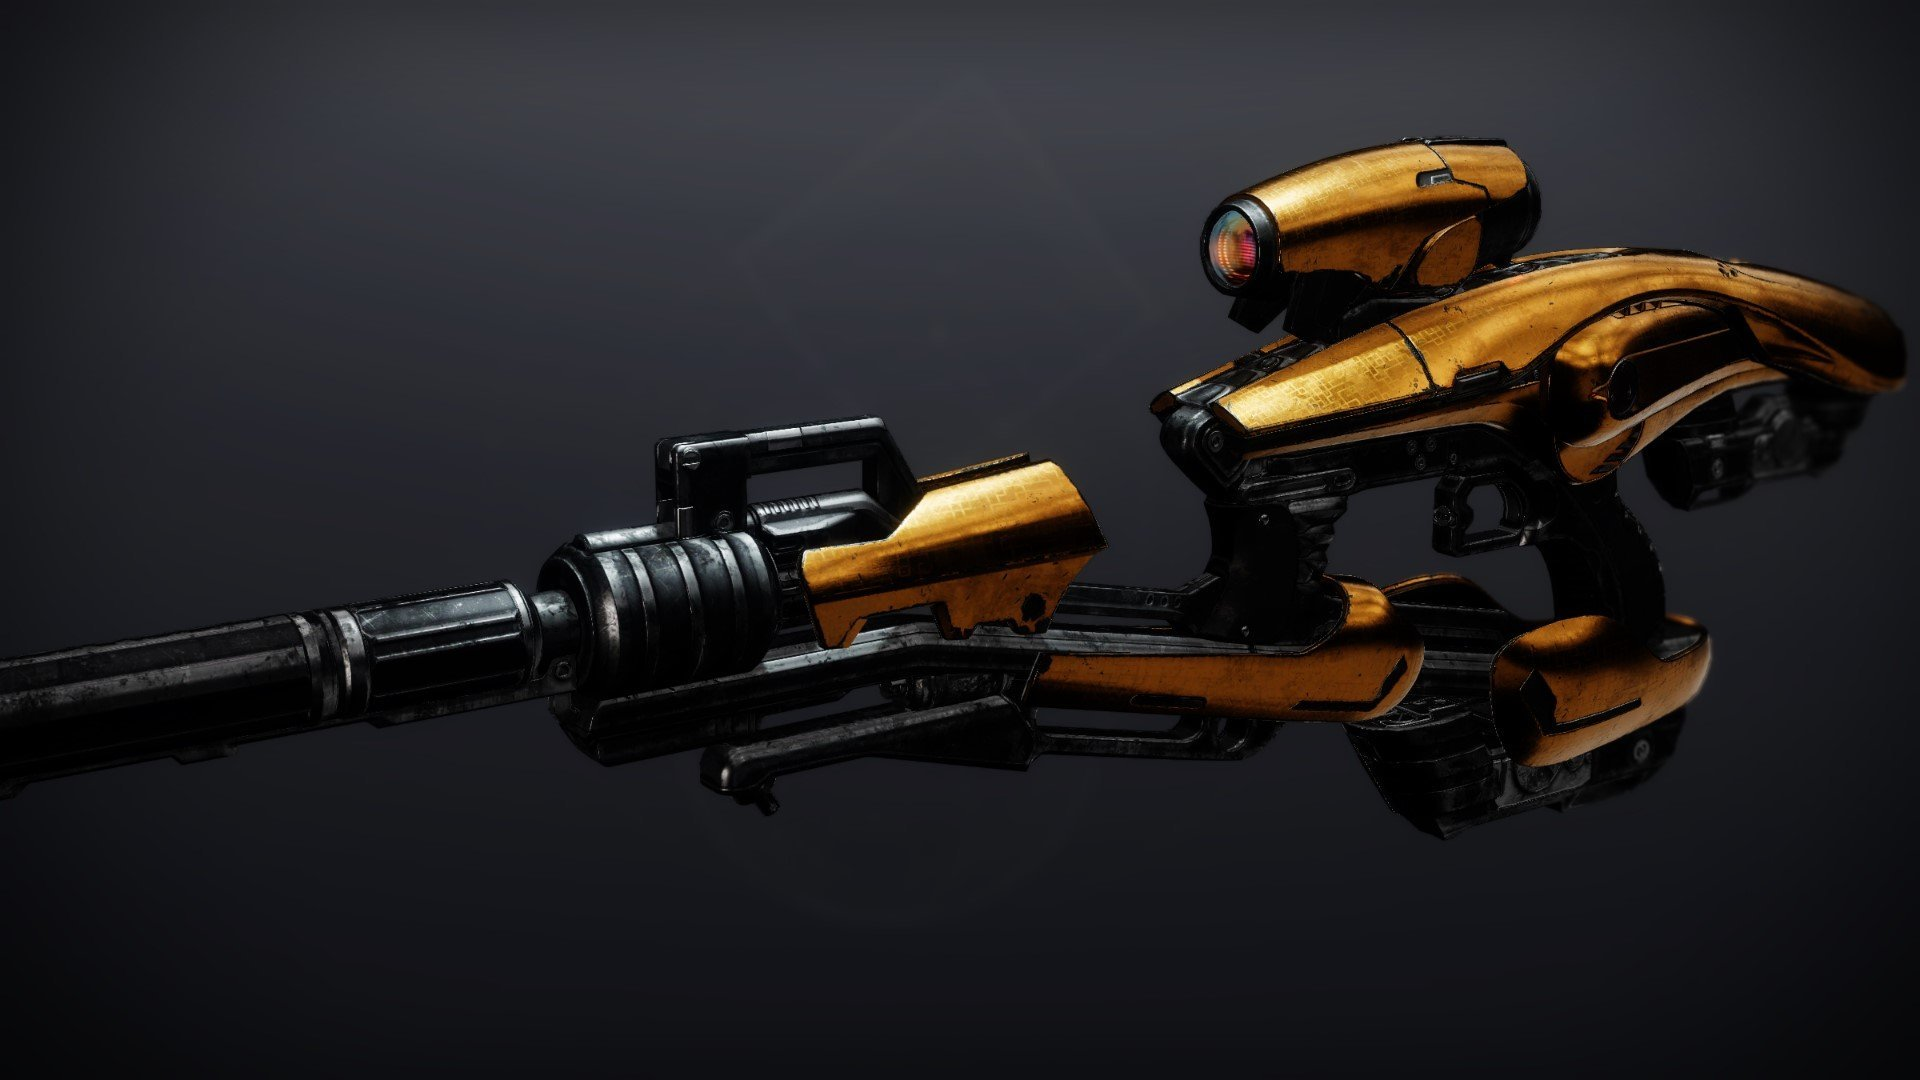 An in-game render of the Vex Mythoclast.